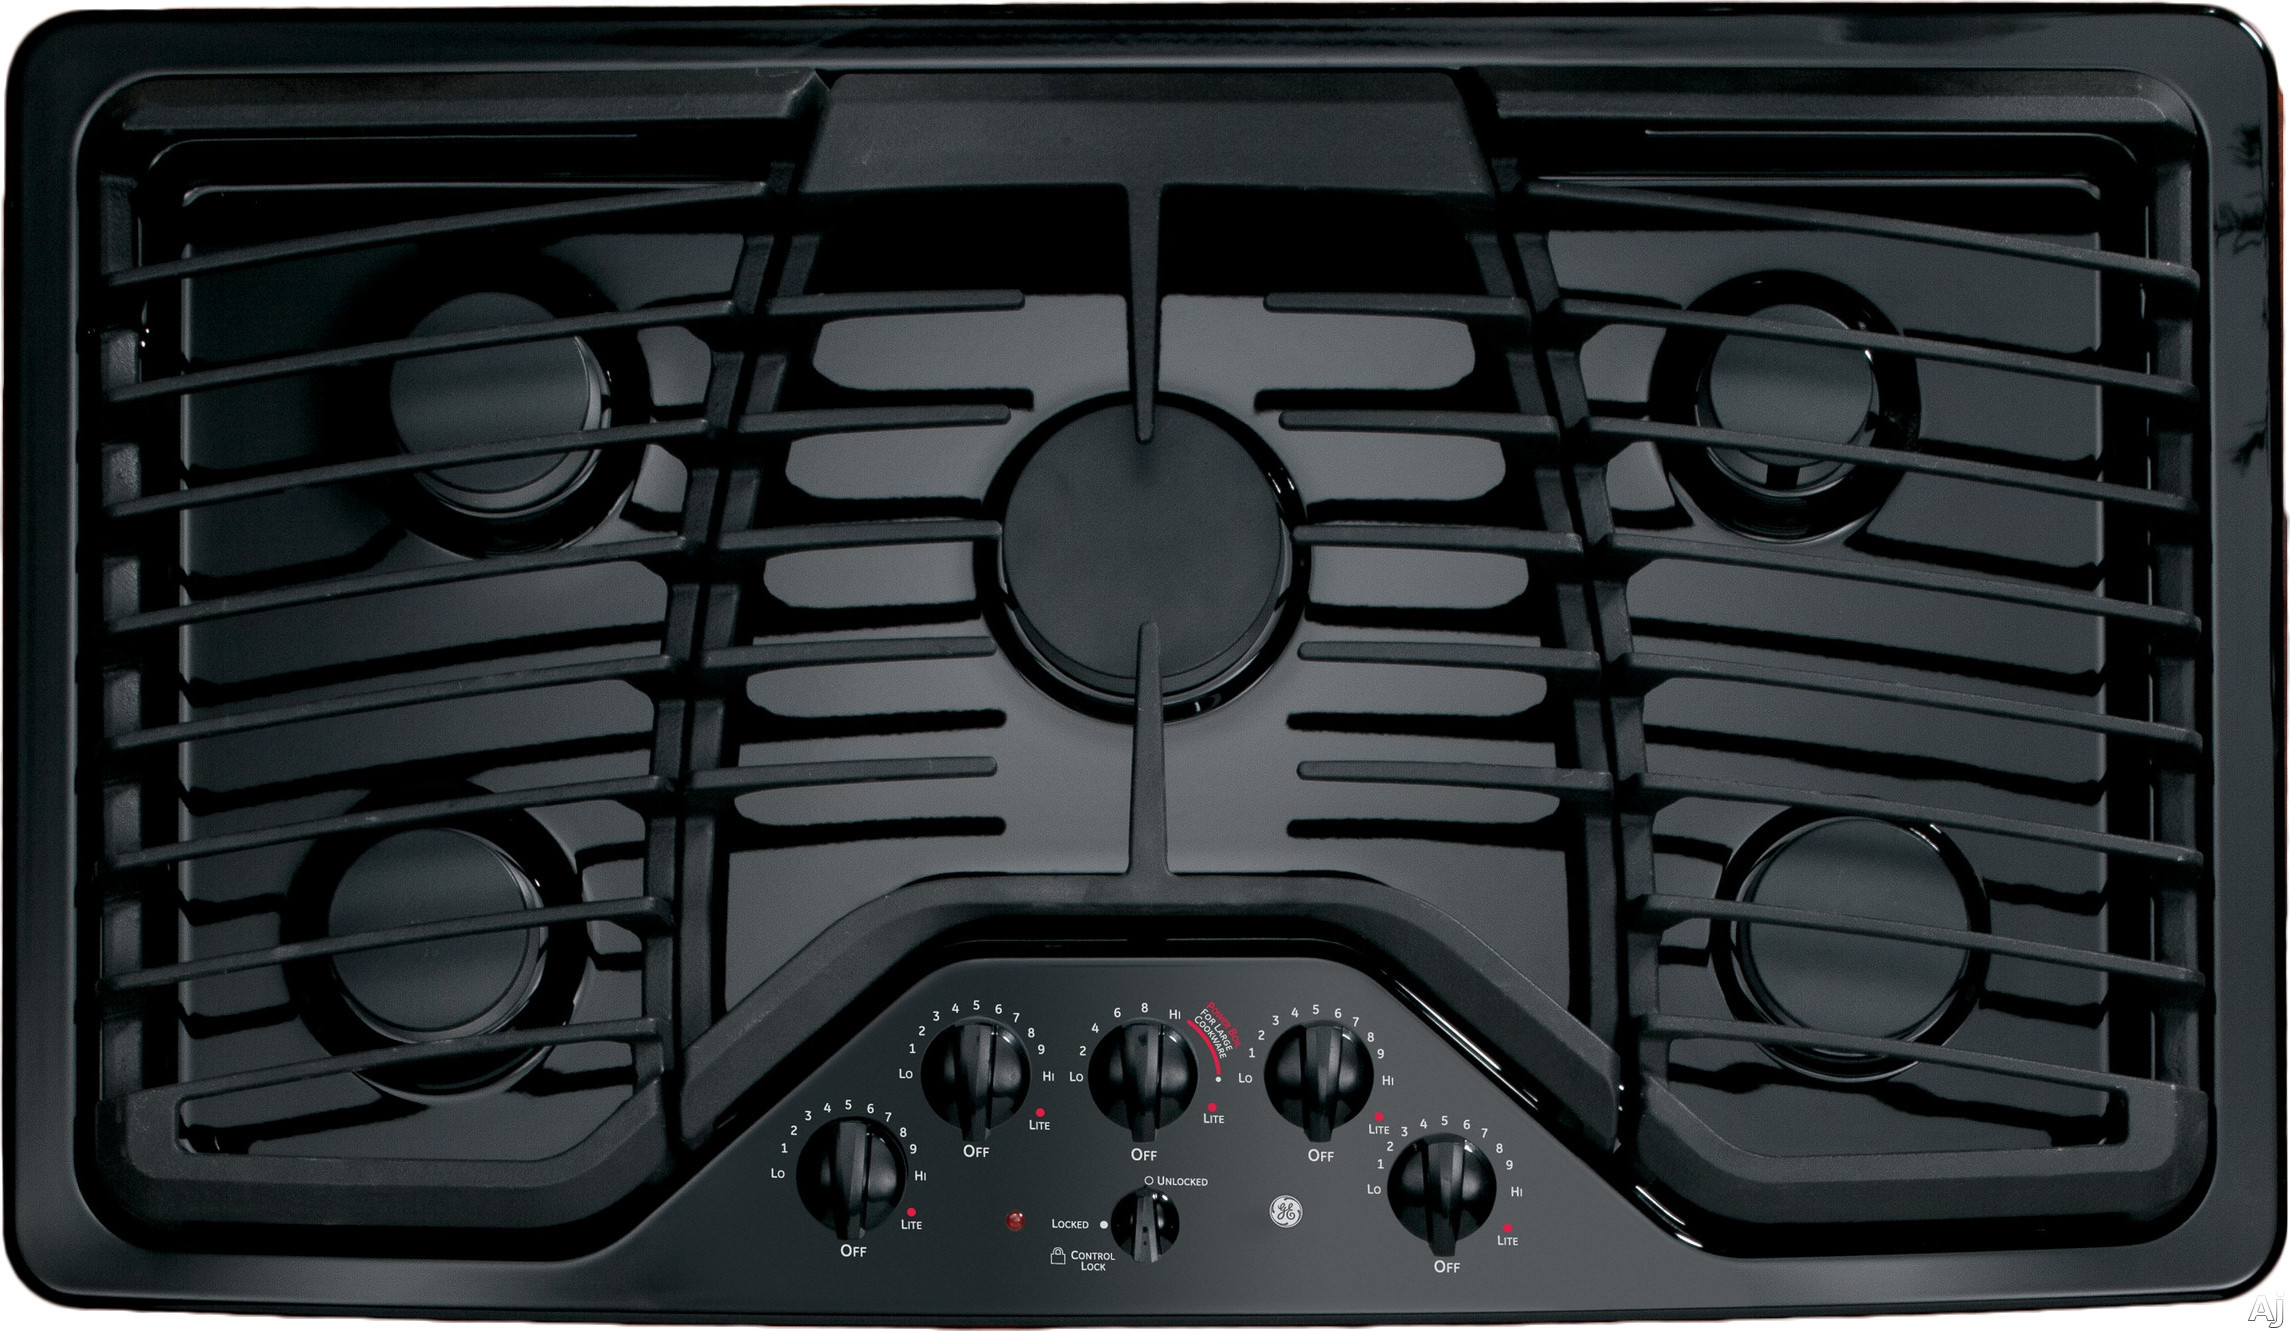 GE Profile PGP976DETBB 36 Inch Gas Cooktop with 5 Sealed Burners, 17,000 BTU PowerBoil, Precise Simmer Burner, Heavy Cast Grates, Child Lock, LED Backlit Knobs, GE Fits! Guarantee and ADA Compliant: Black